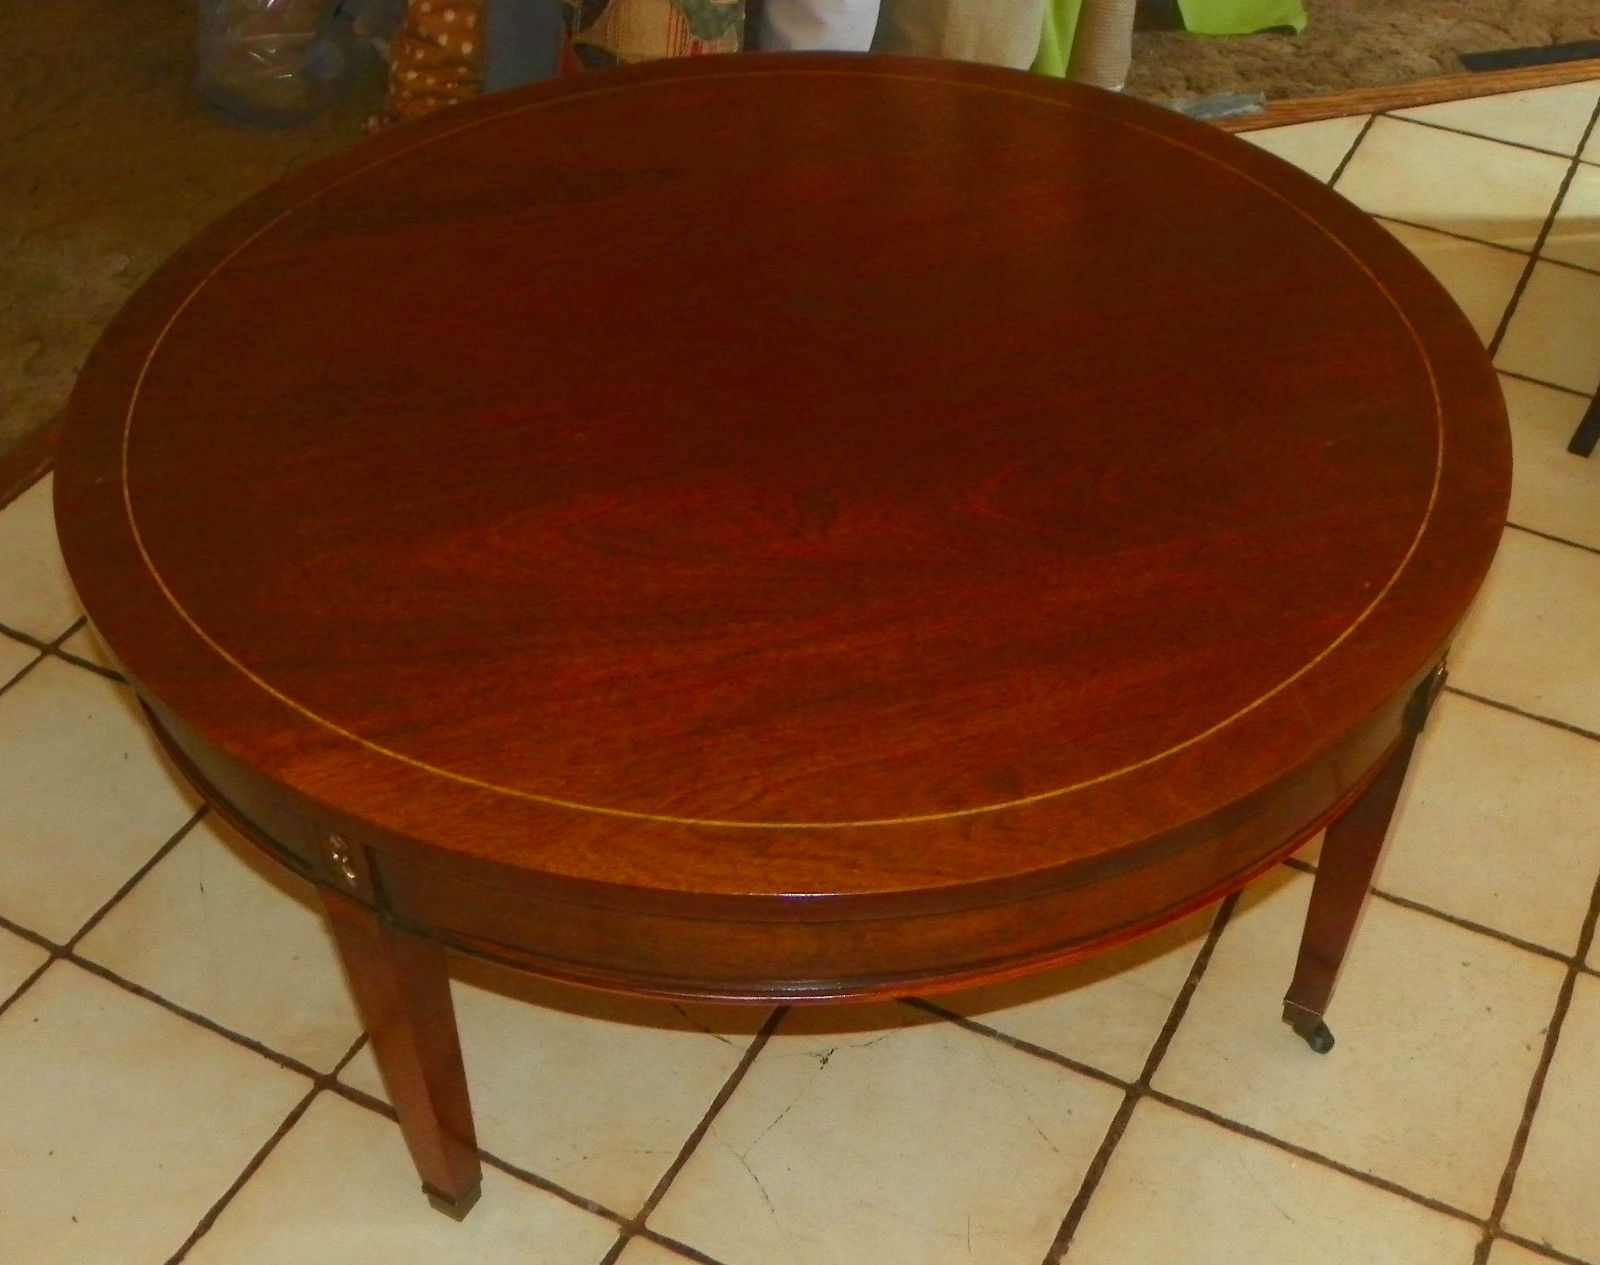 Mahogany Round Coffee Table with Protective Glass Top